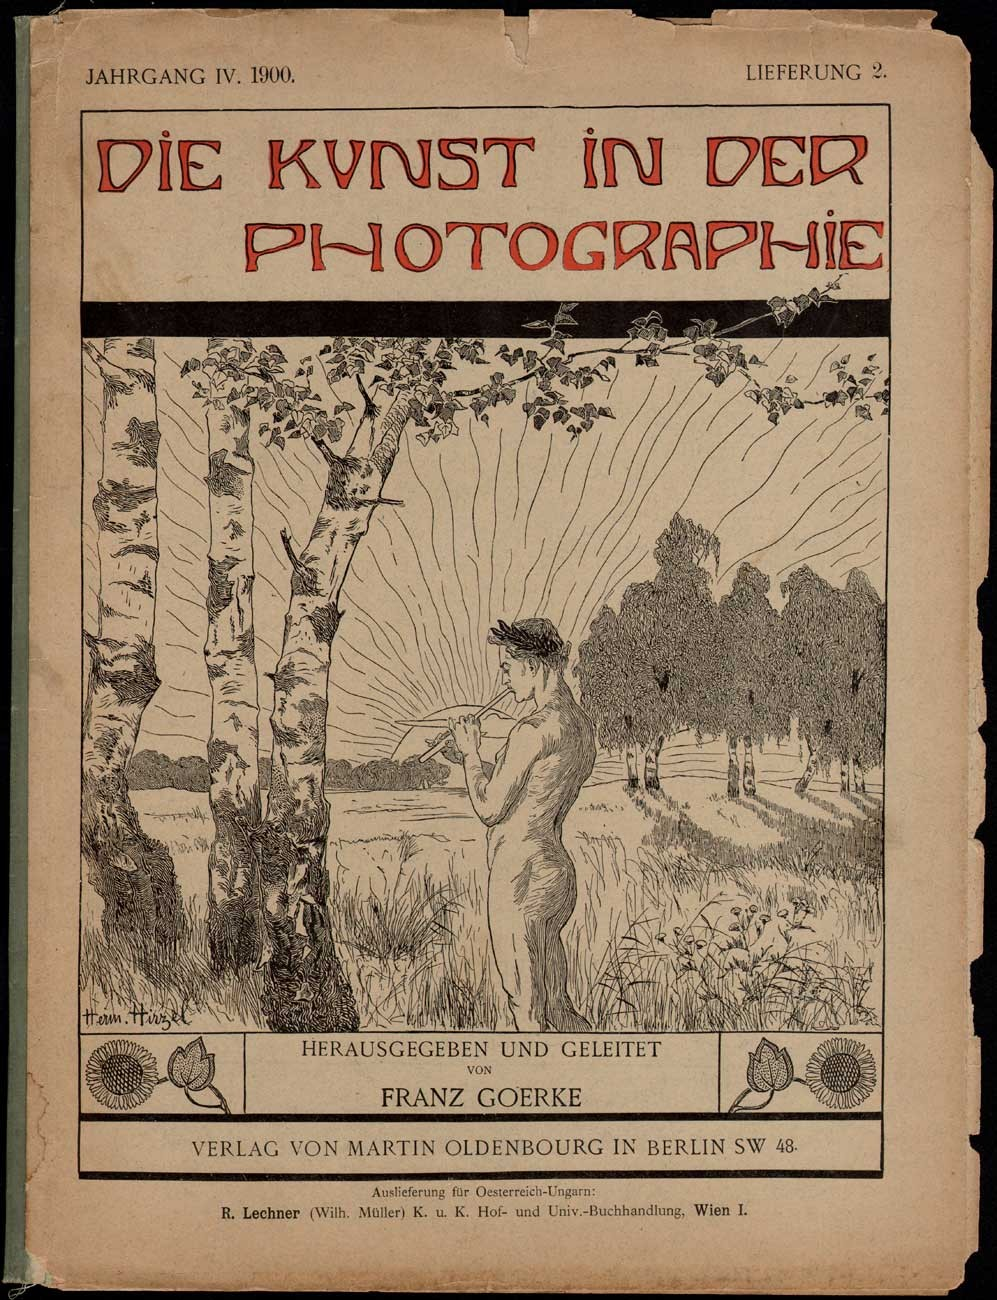 Die Kunst Journal Cover Die Kunst In Der Photographie 1897 1903 Photoseed